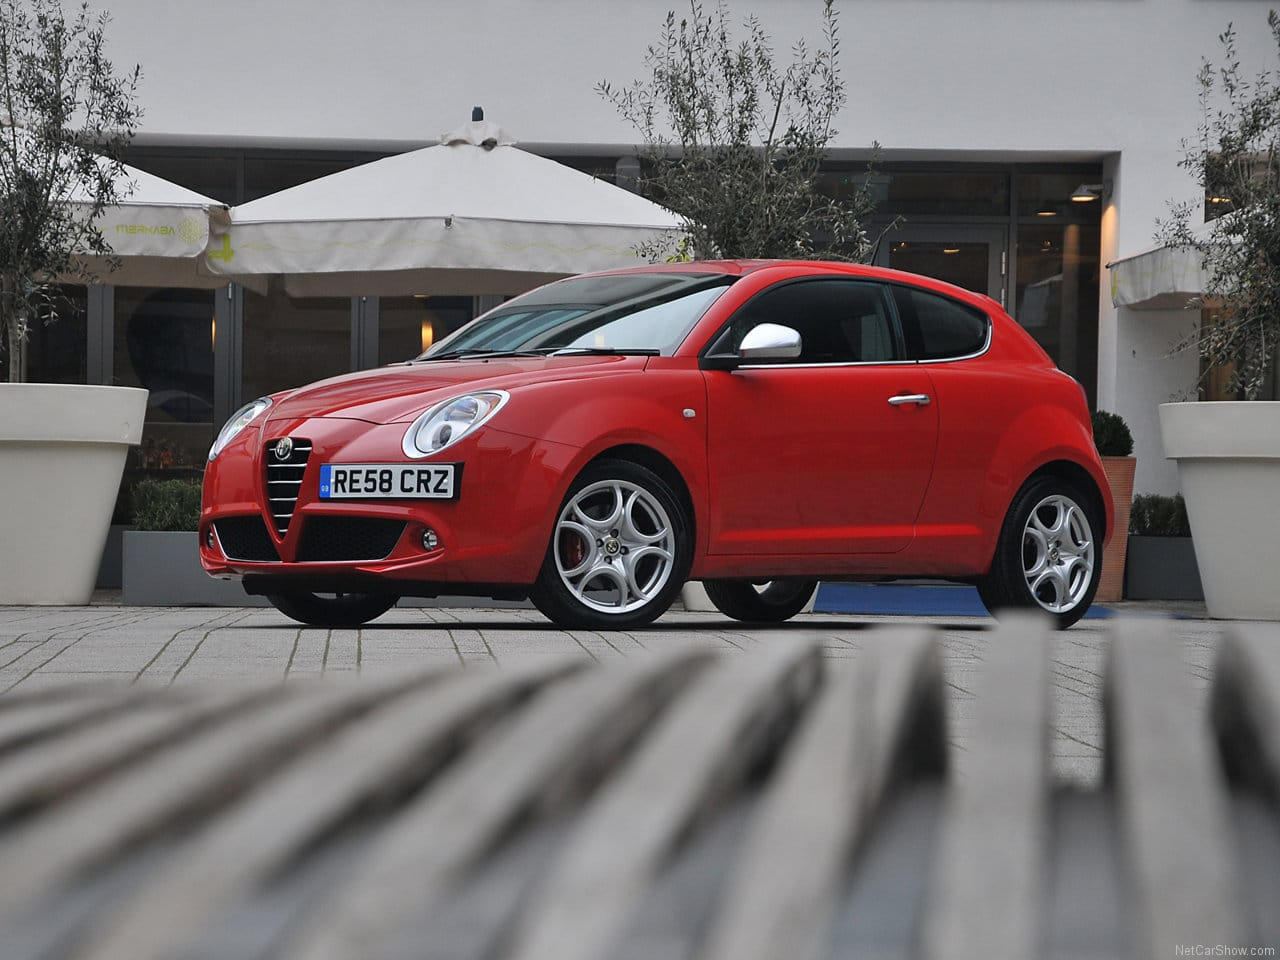 Alfa Romeo Mito, Alfa Romeo, Mito, small car, hatchback, 8C, Alfa Romeo 8C, car, cars, city car, Fiat 500, motoring, automotive, bargain car, cheap car, eBay, eBay motors, autotrader